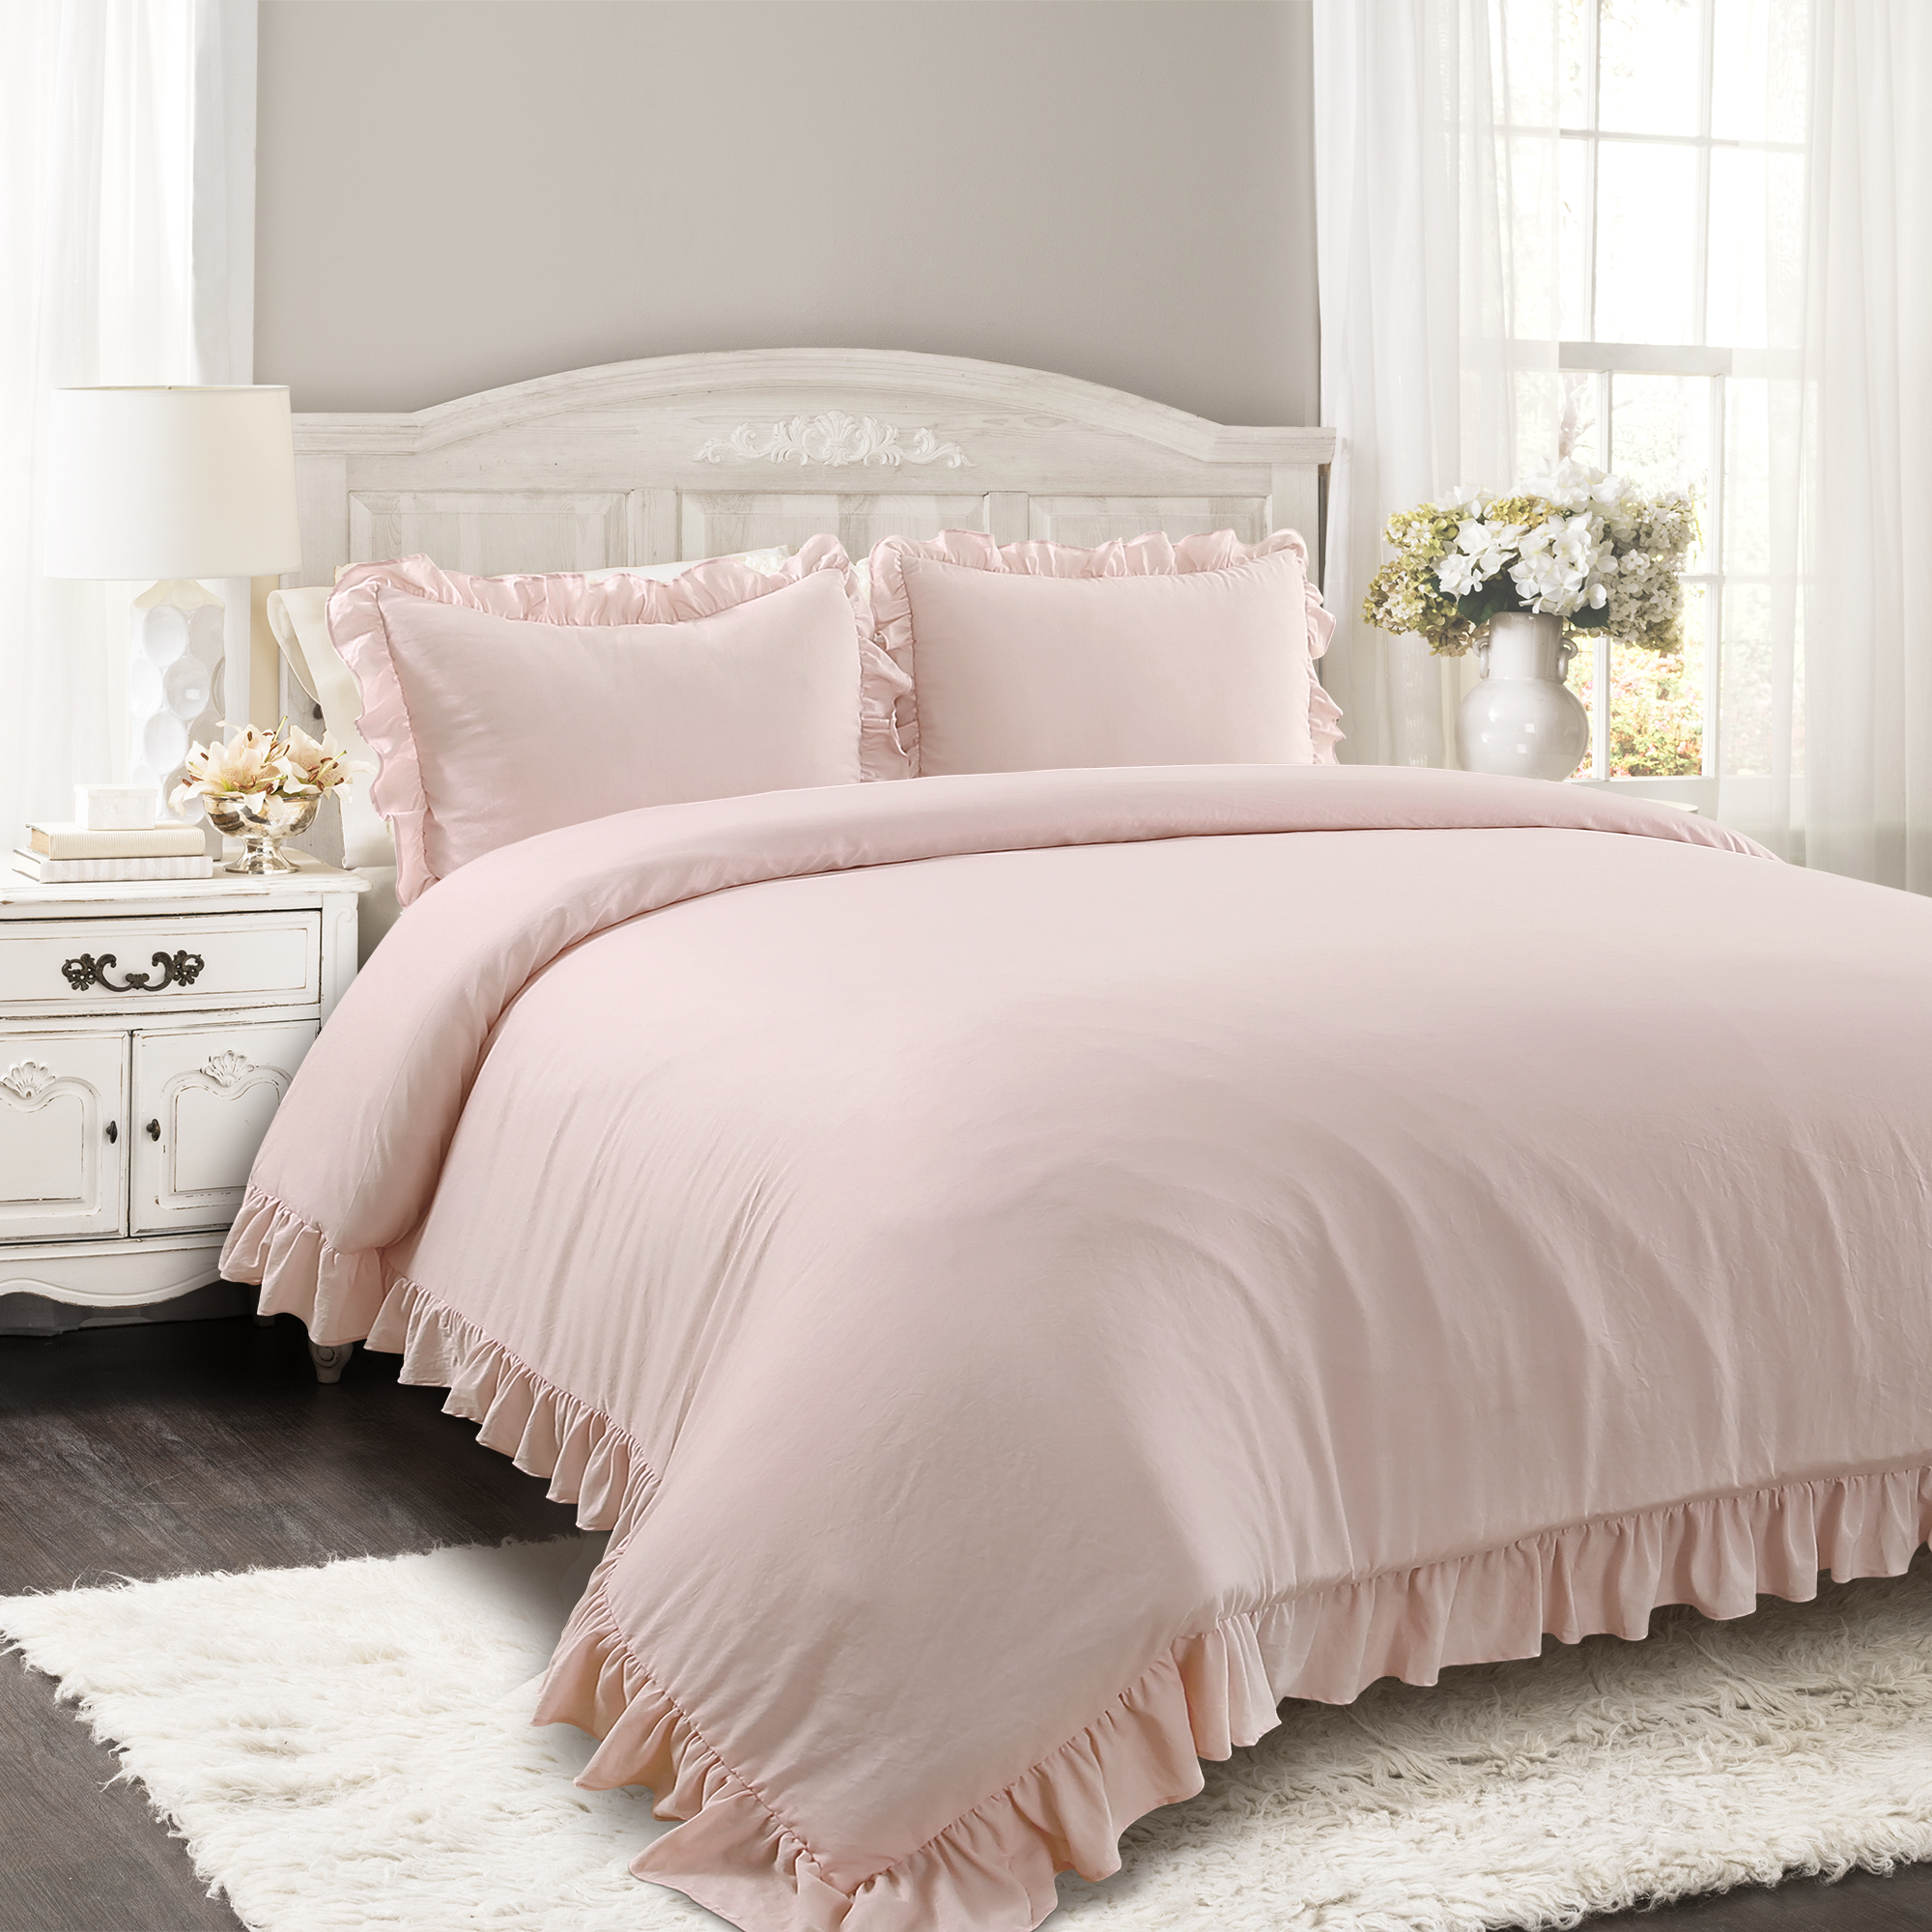 Reyna Comforter Blush 3Pc Set King